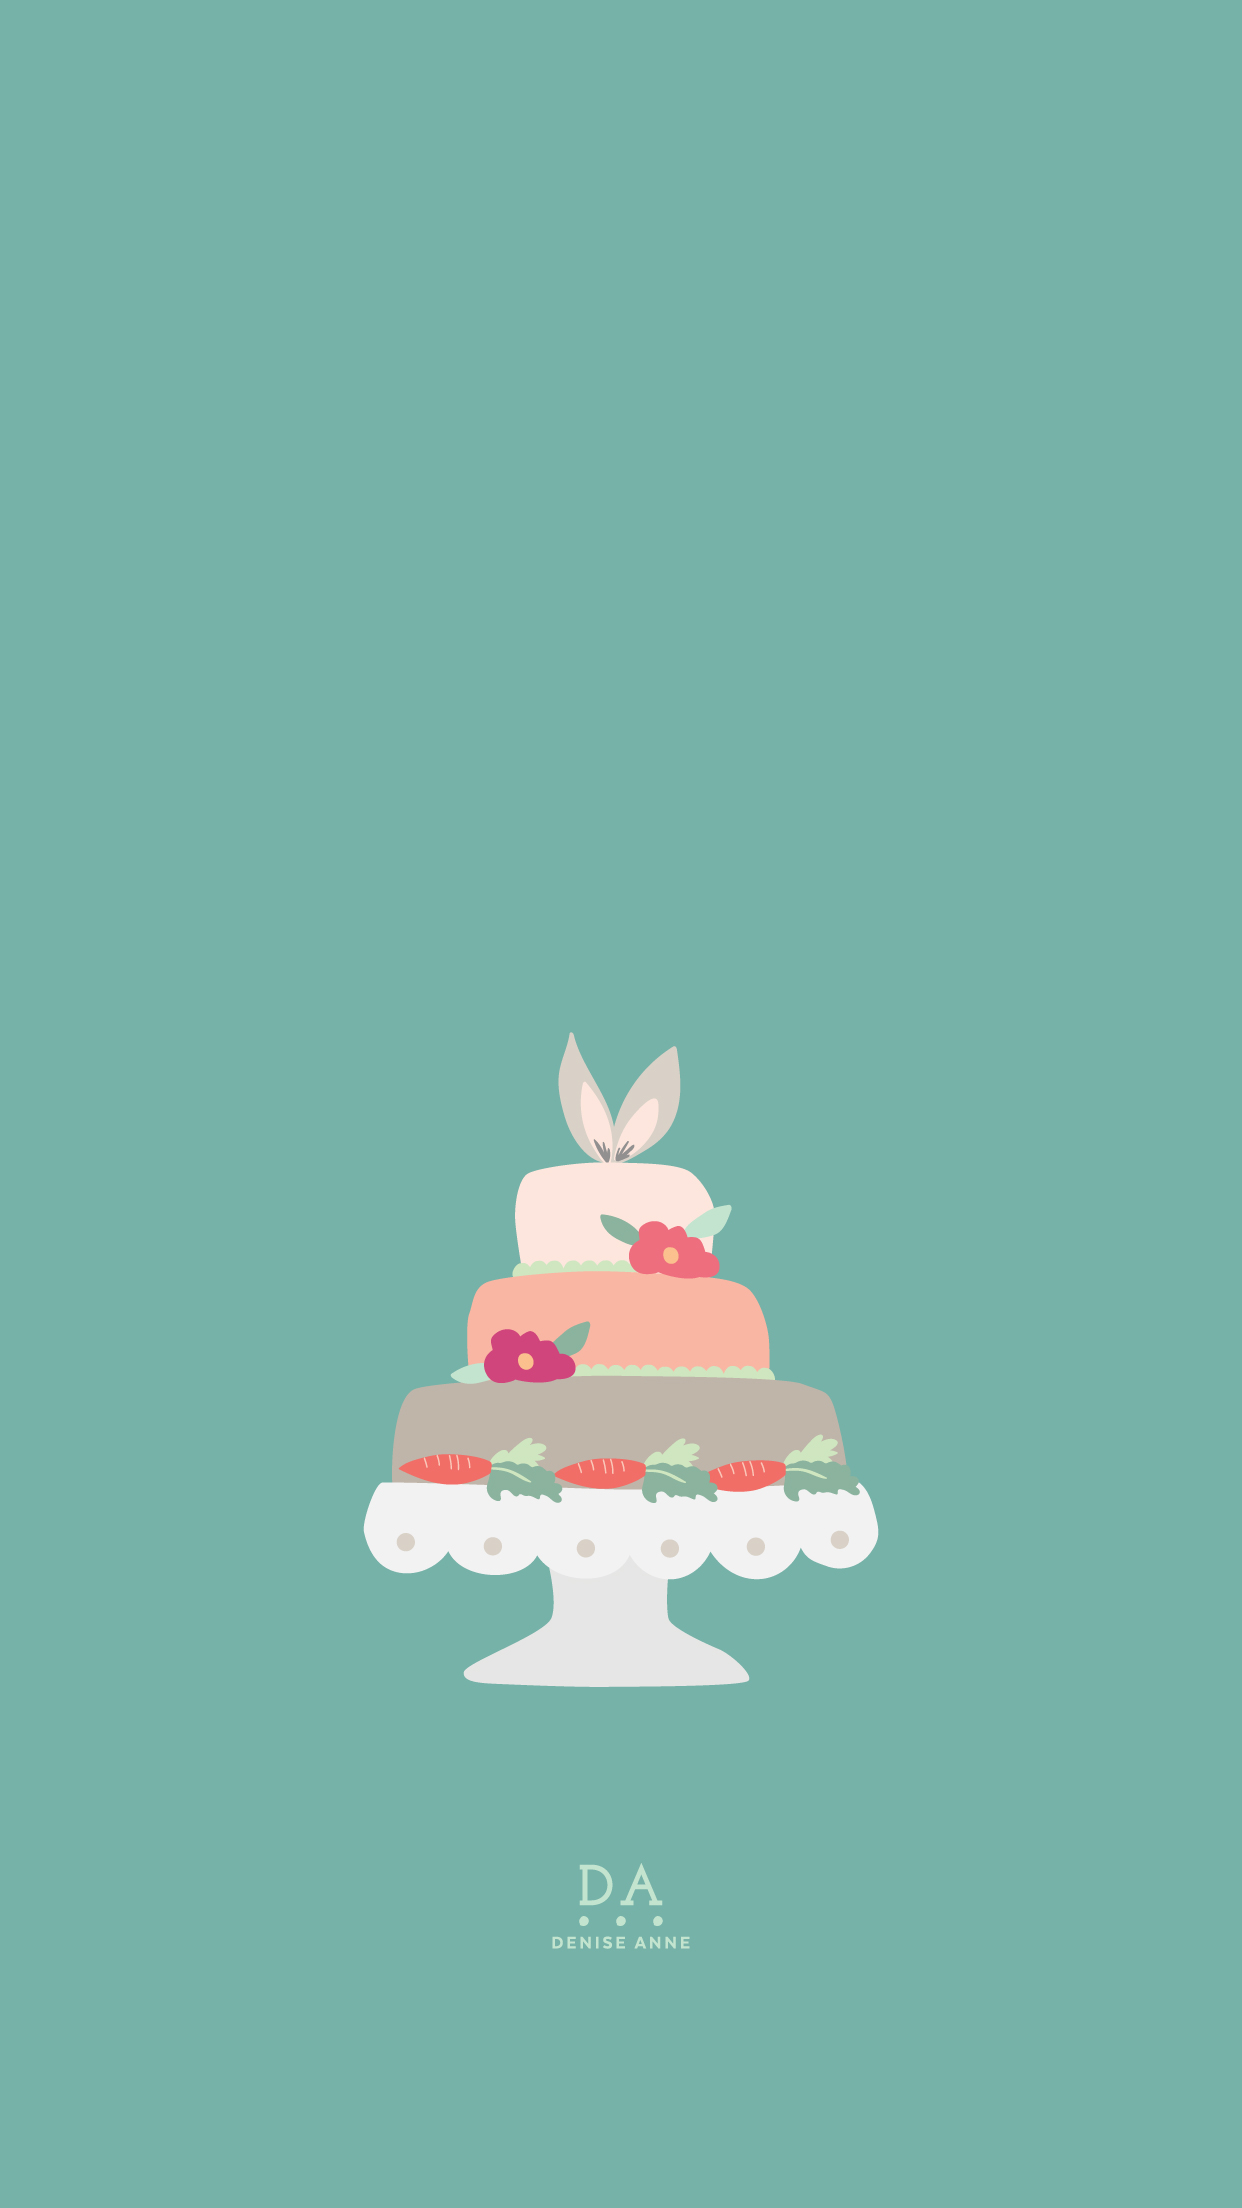 Easter Cake - Click for download links